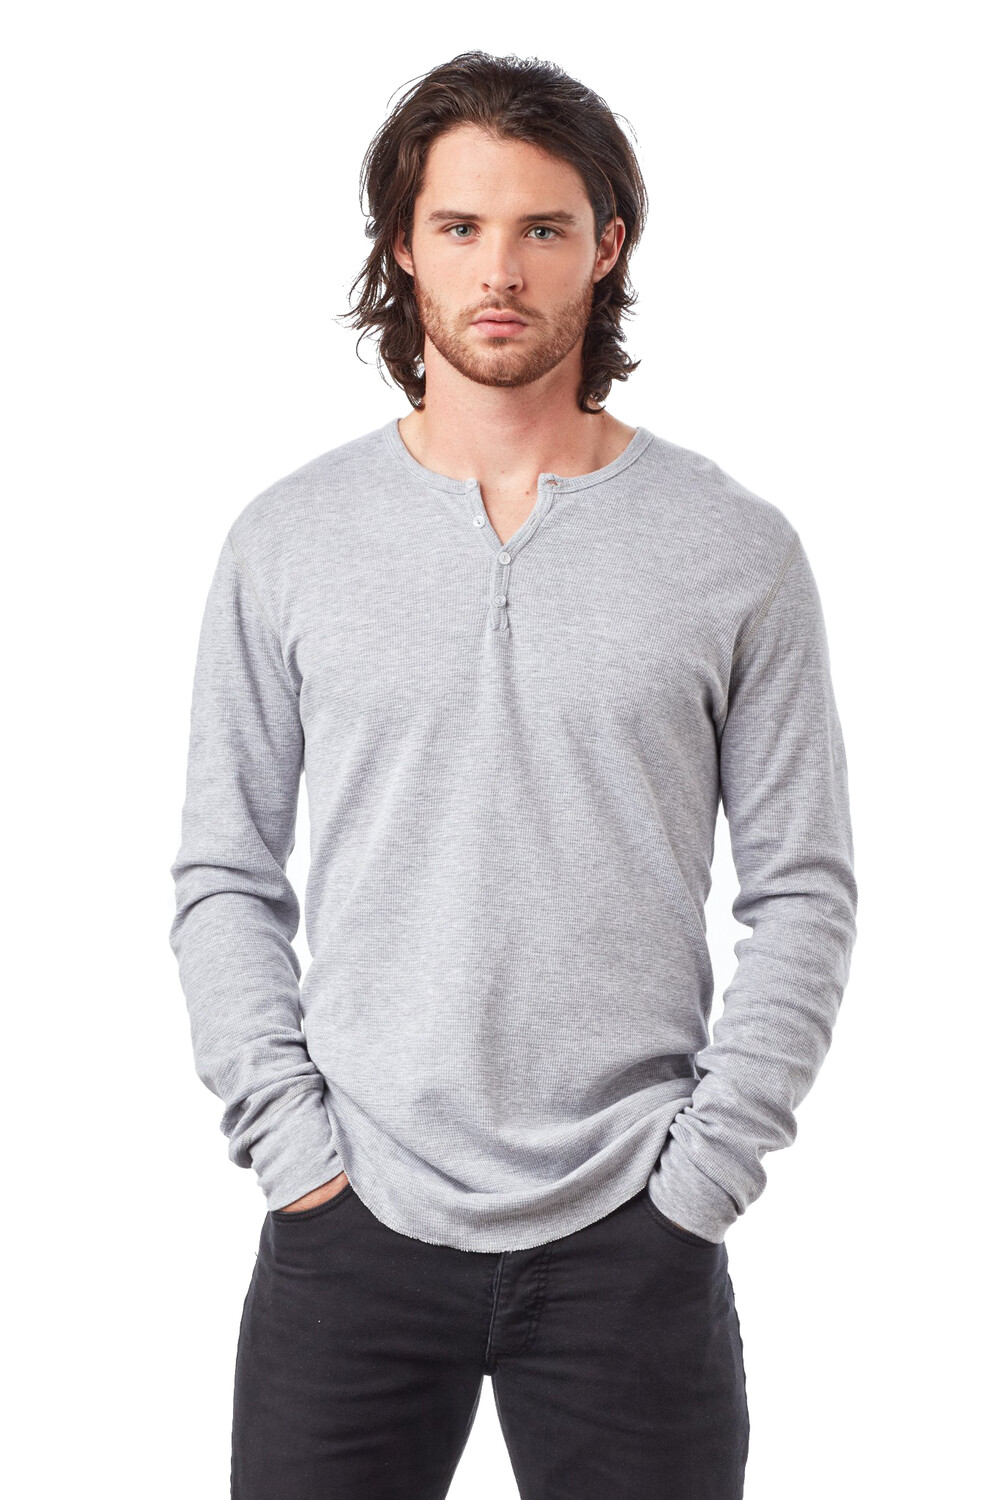 Men's Thermal Pacific